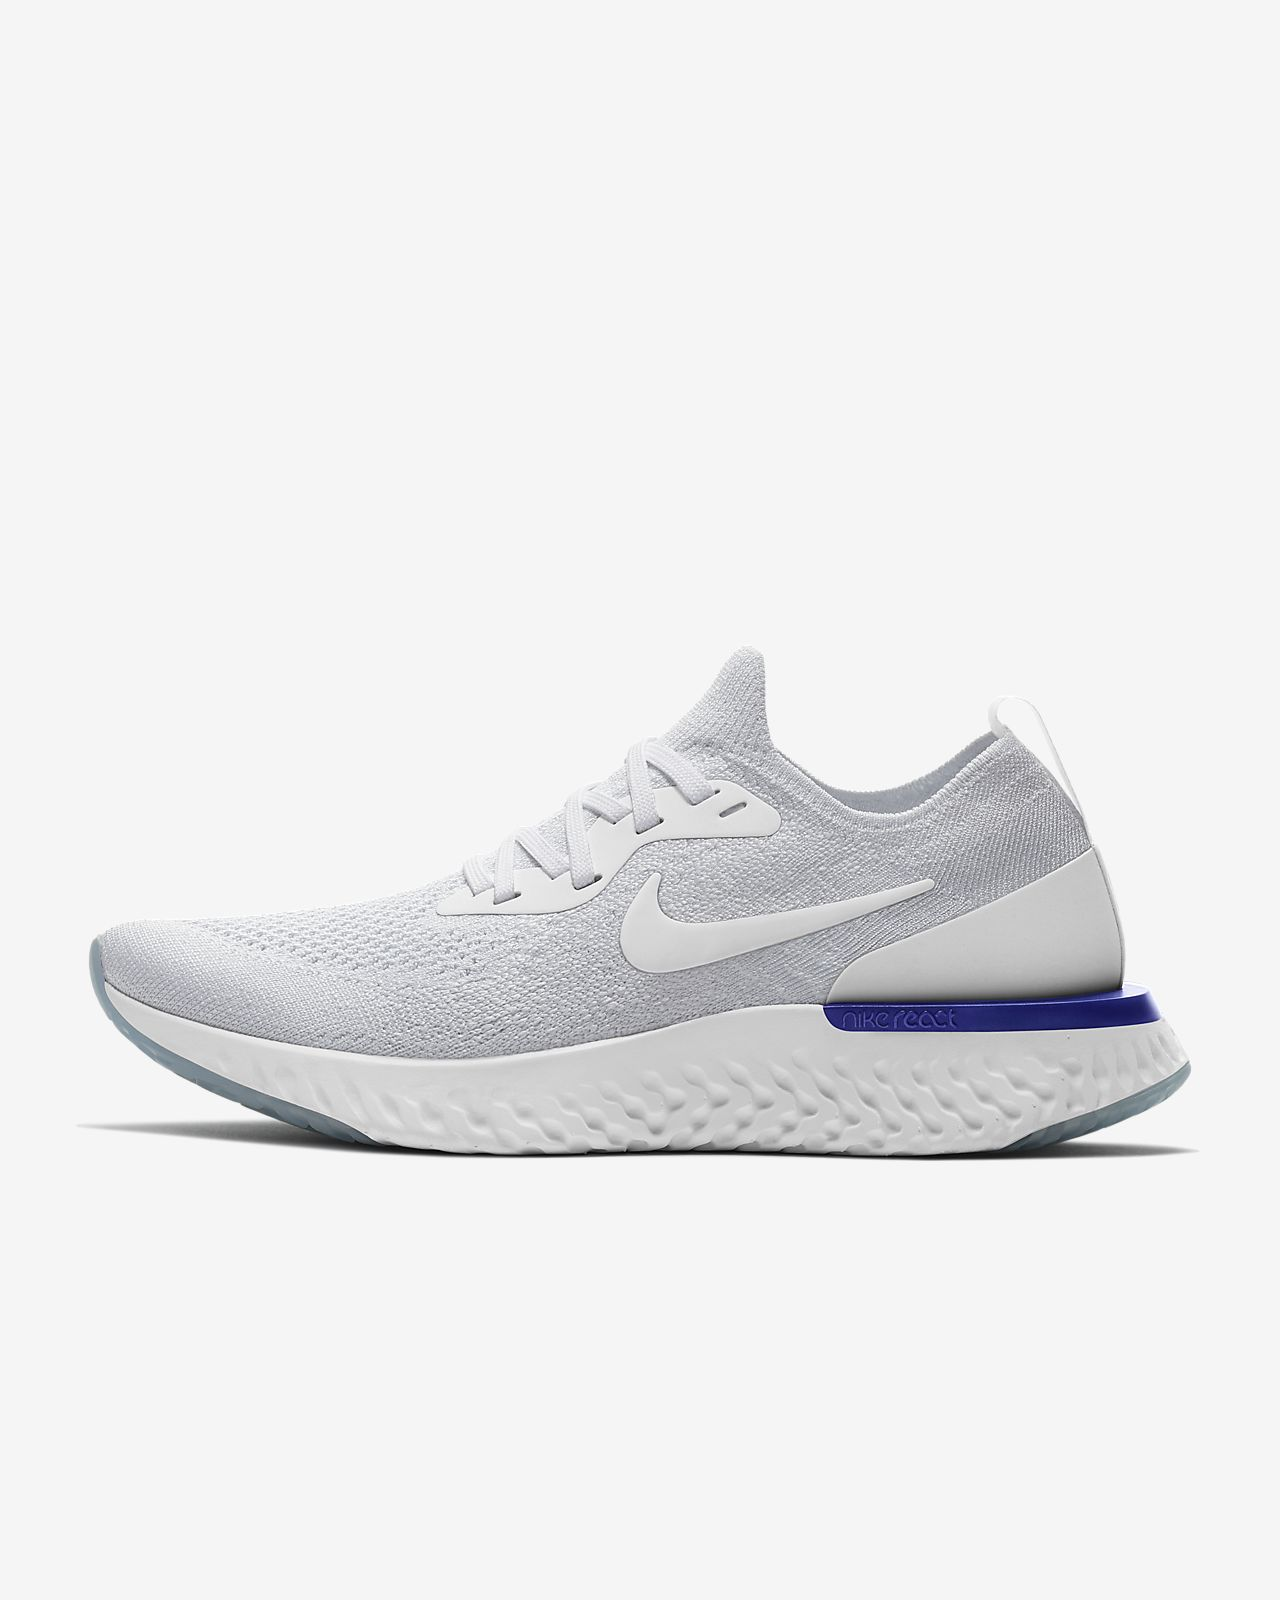 Nike Women's Epic React Flyknit Running Shoes - NEW WITH BOX!! LIGHT CREAM